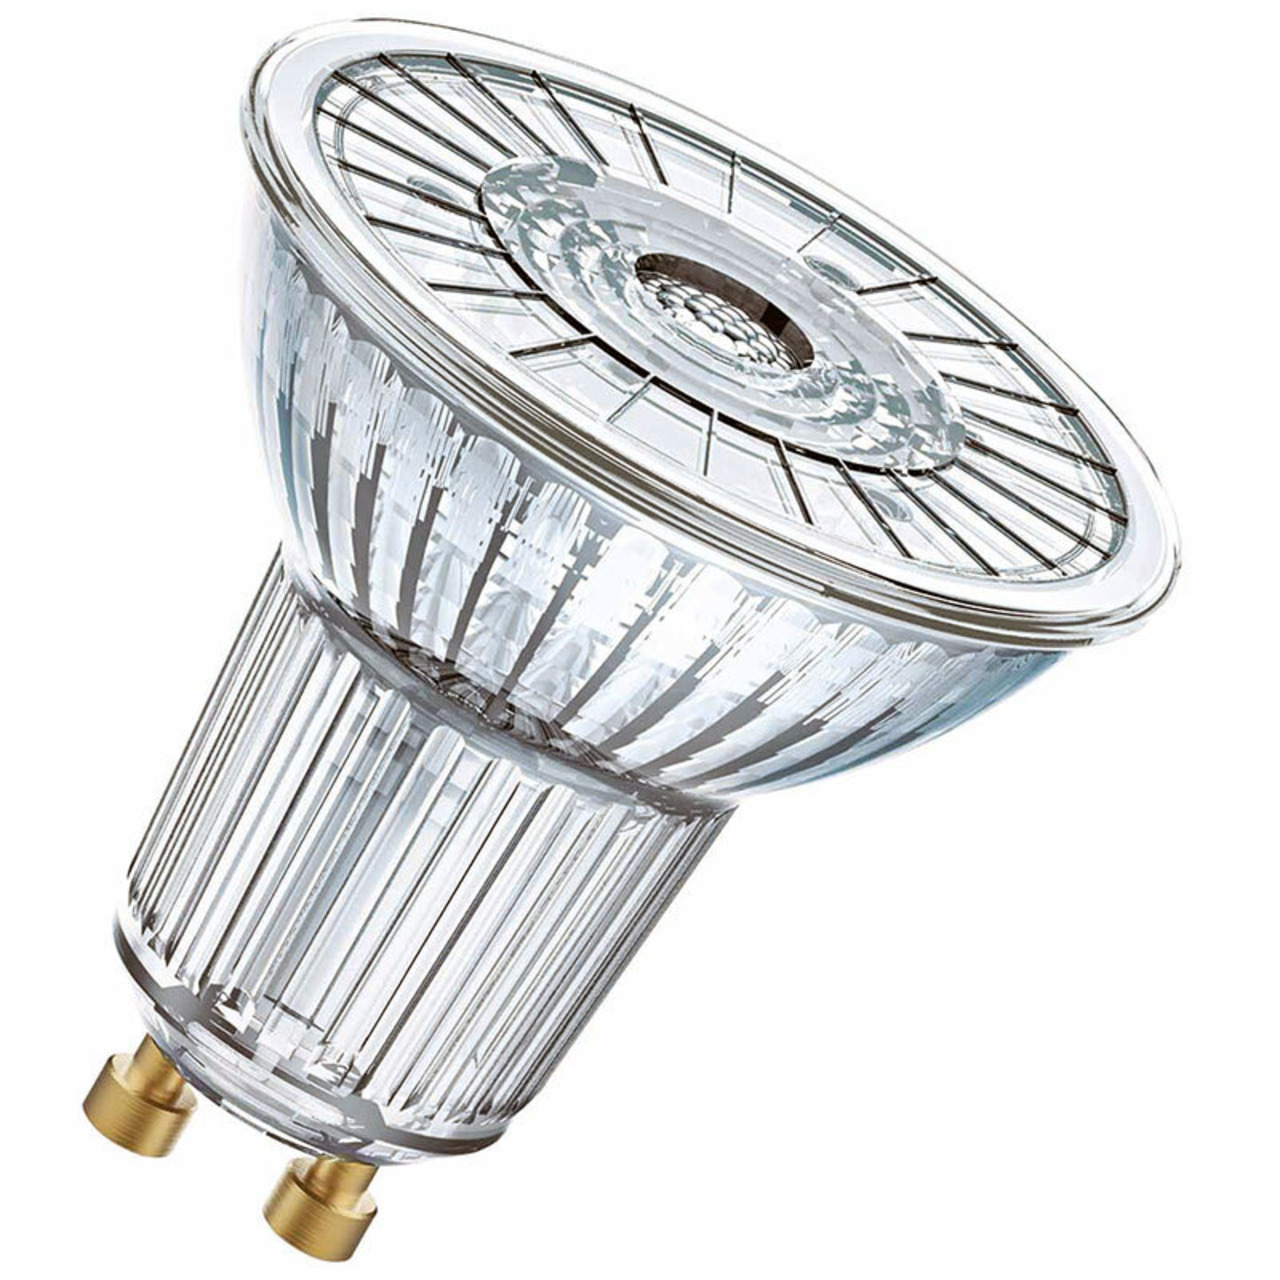 OSRAM LED STAR 6-9-W-GU10-LED-Lampe- warmweiss- 36-